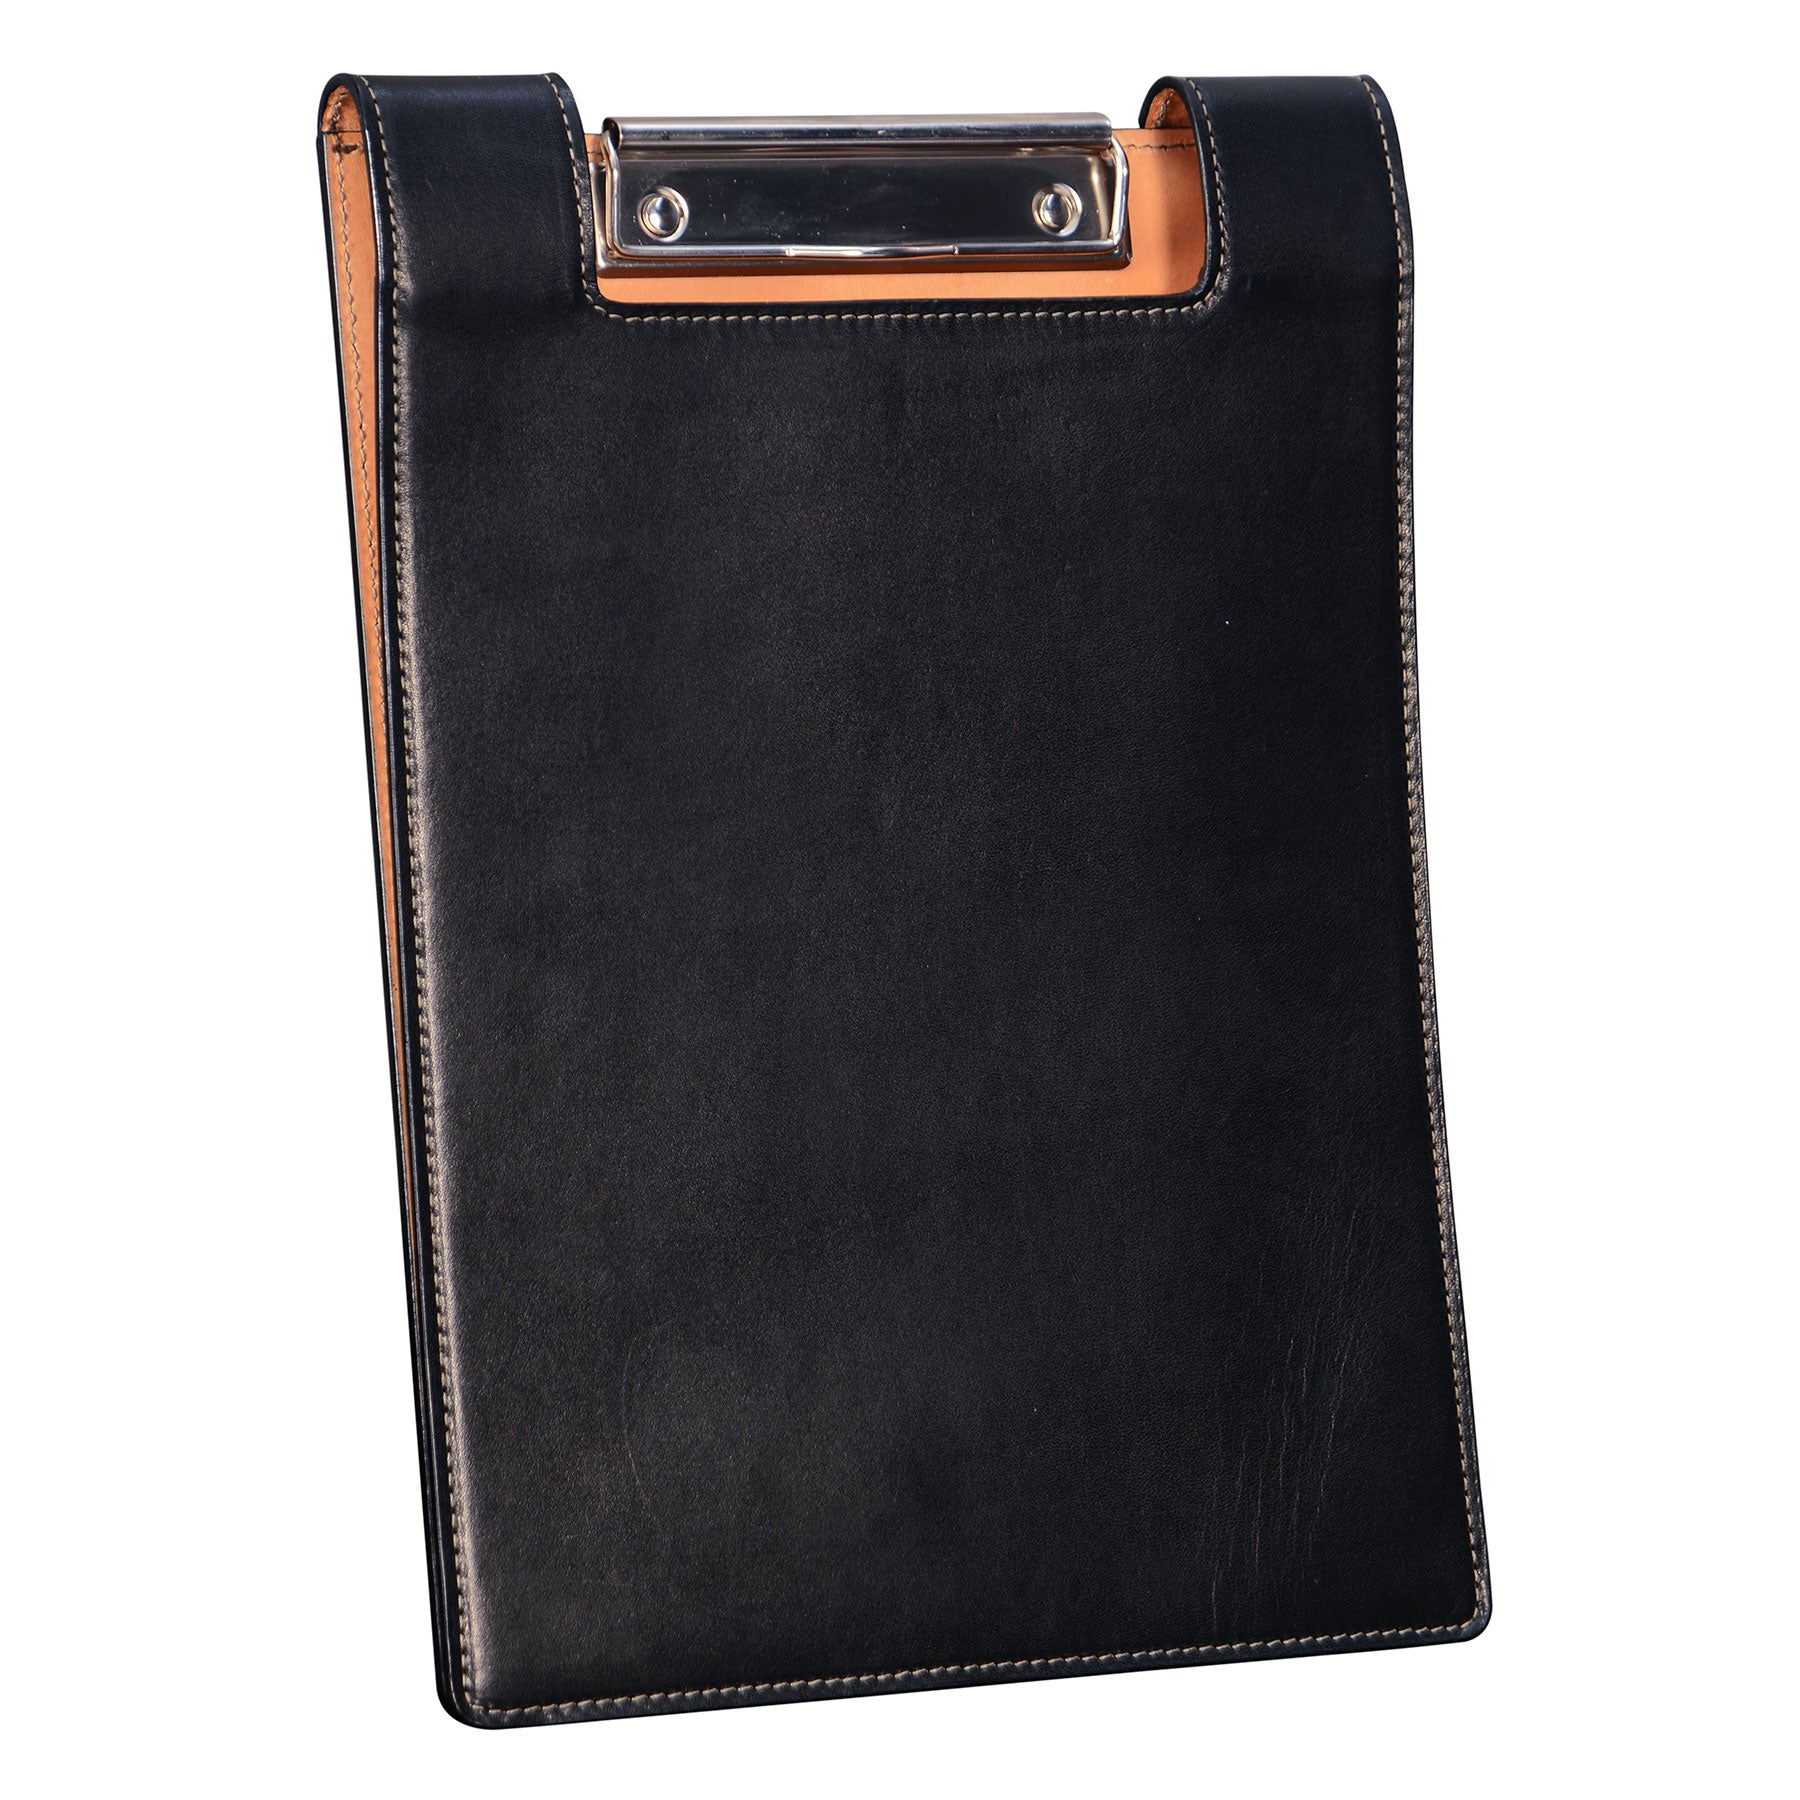 Leather Clip Board: hand-burnished leather